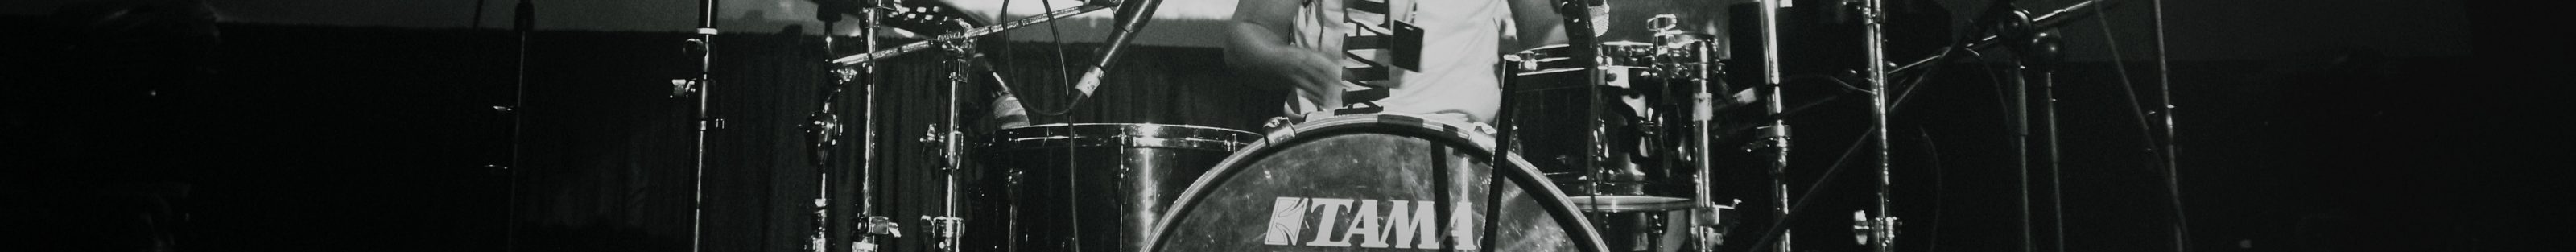 A drummer playing in a venue